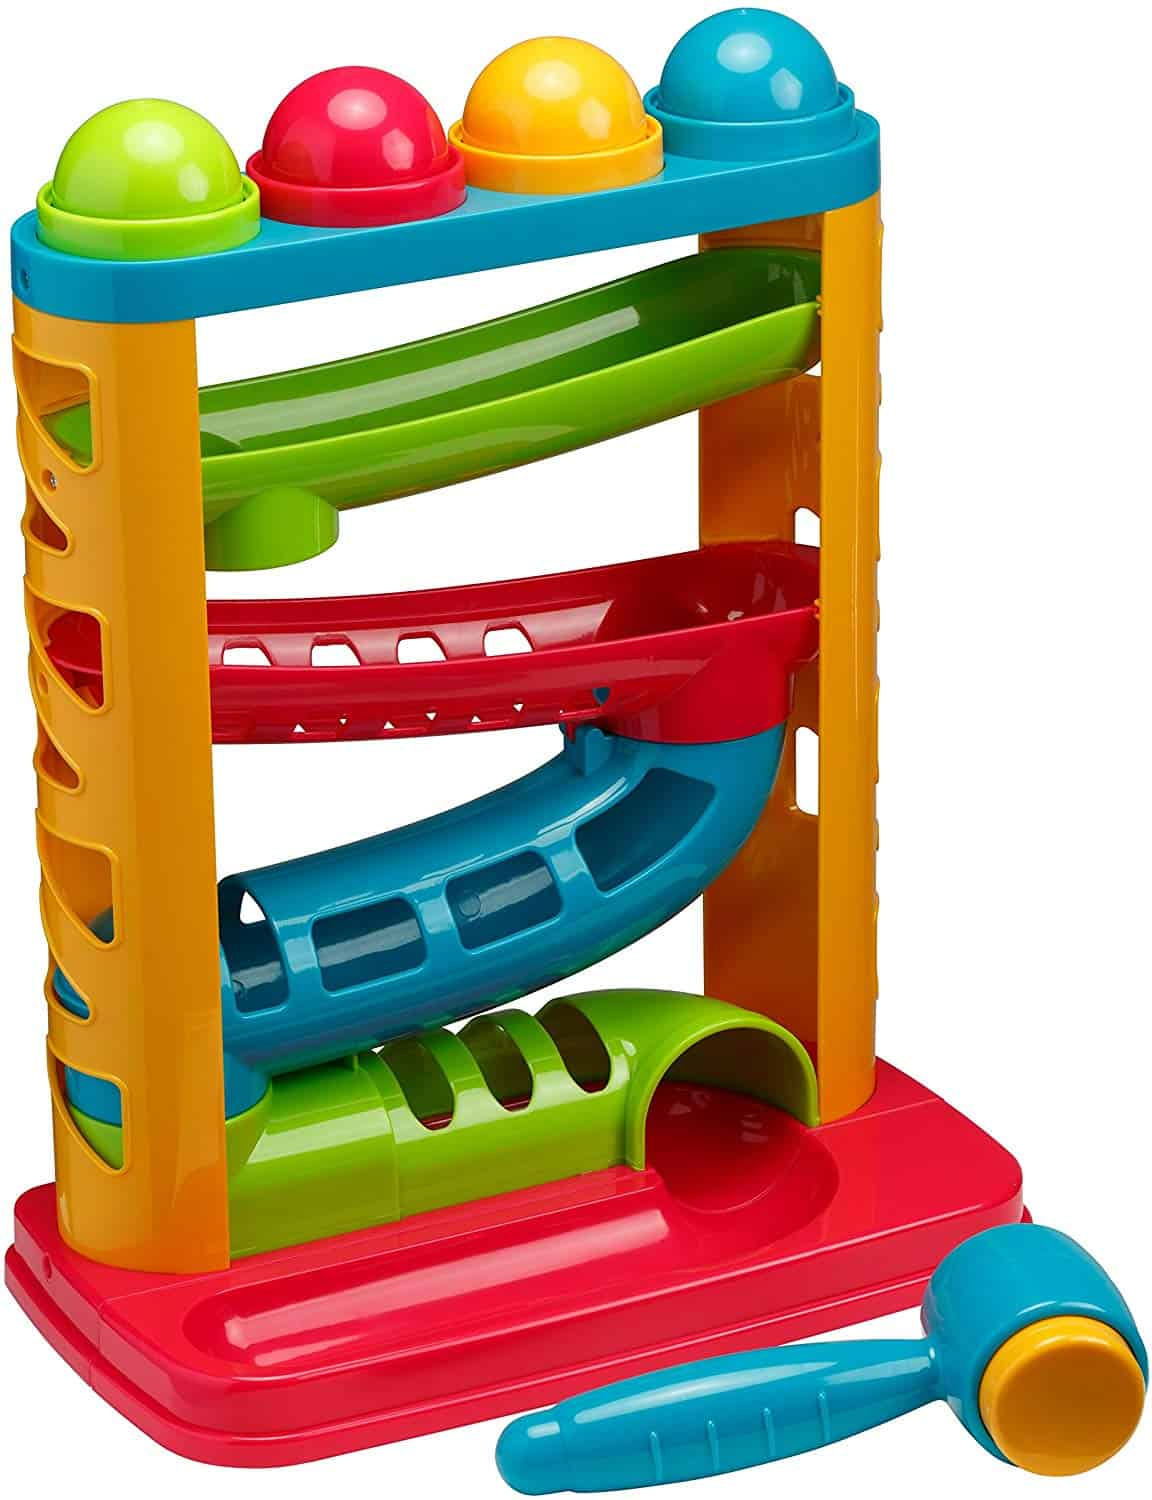 Best Stem Toys For Toddlers 2021 Types Prices Age Ranges Reviews